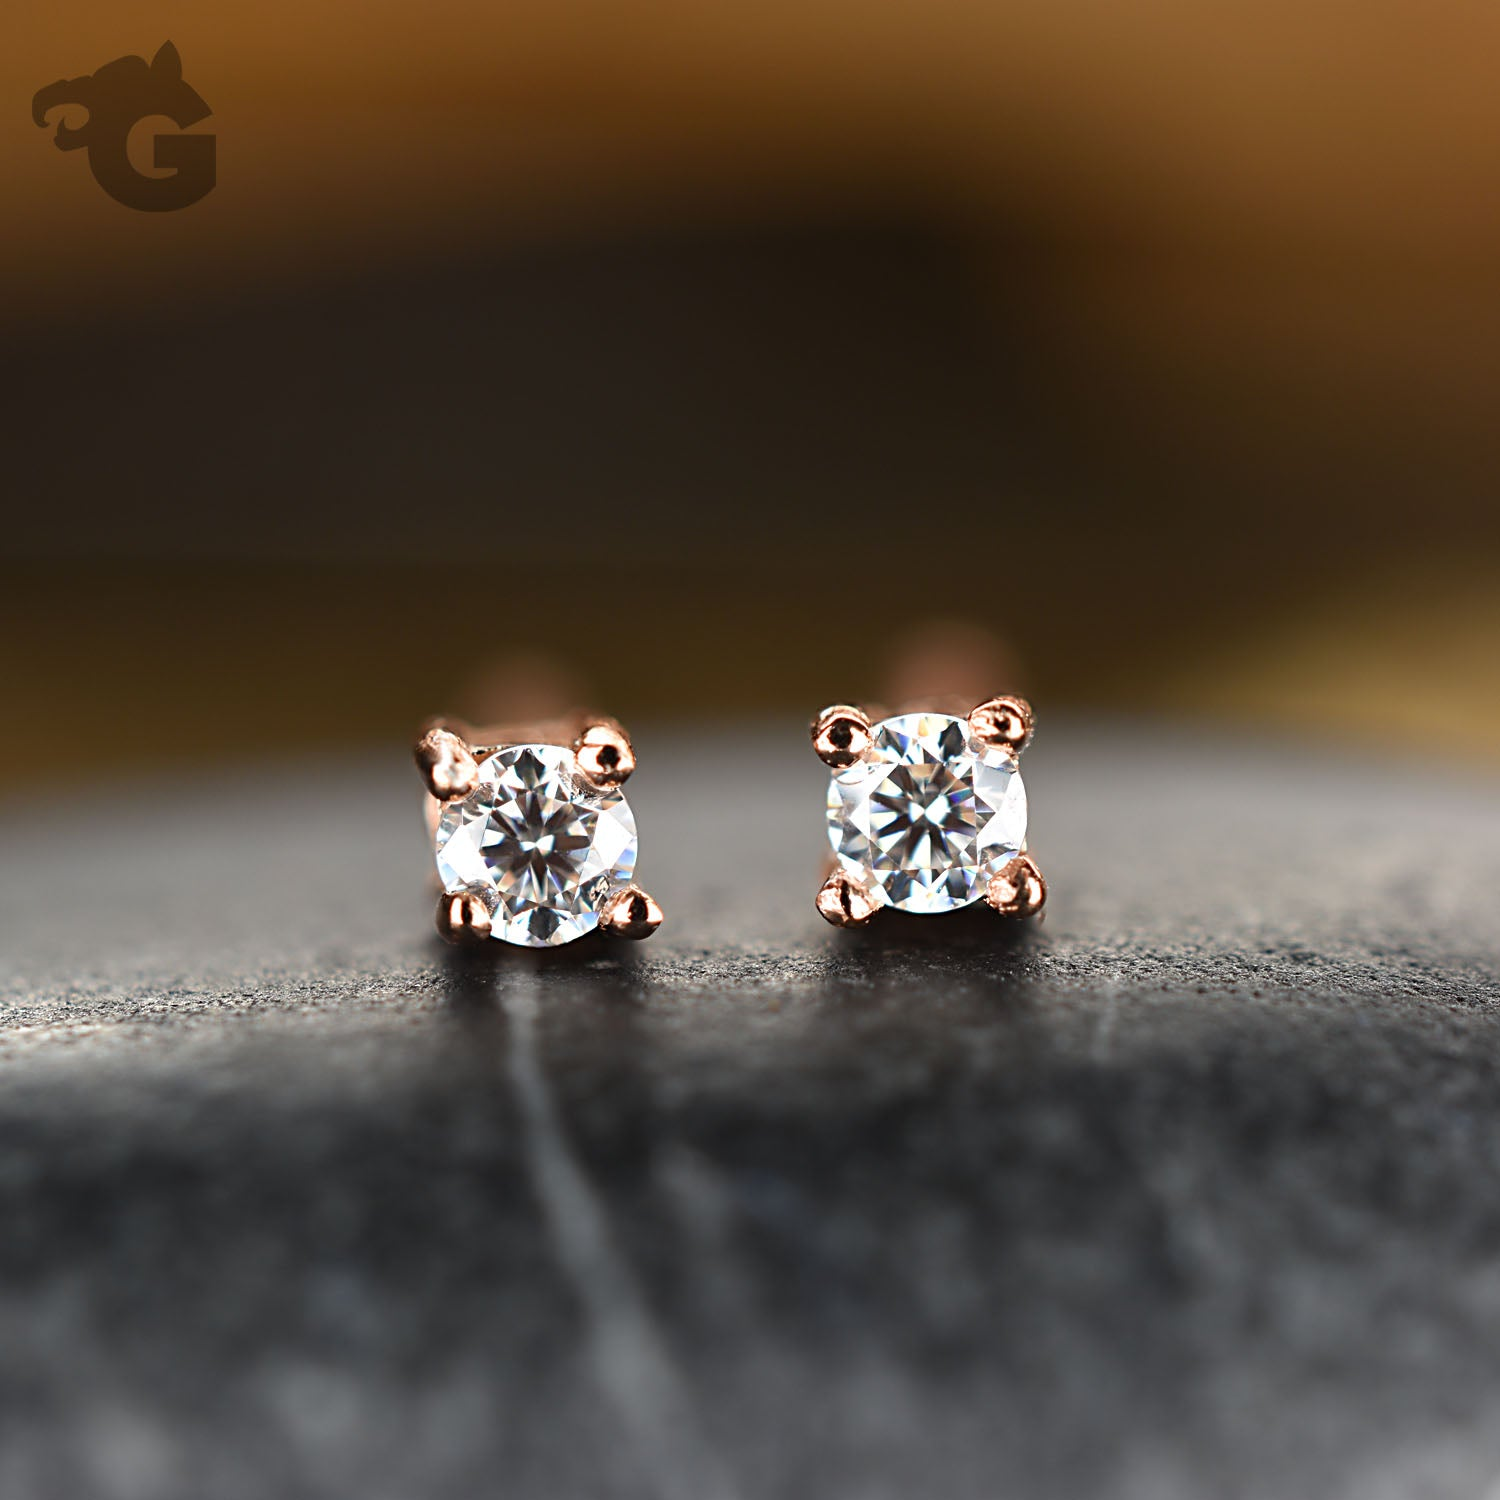 Tiny stud earrings colorless Moissanite D diamond 18K rose gold overlay - Glermes.com